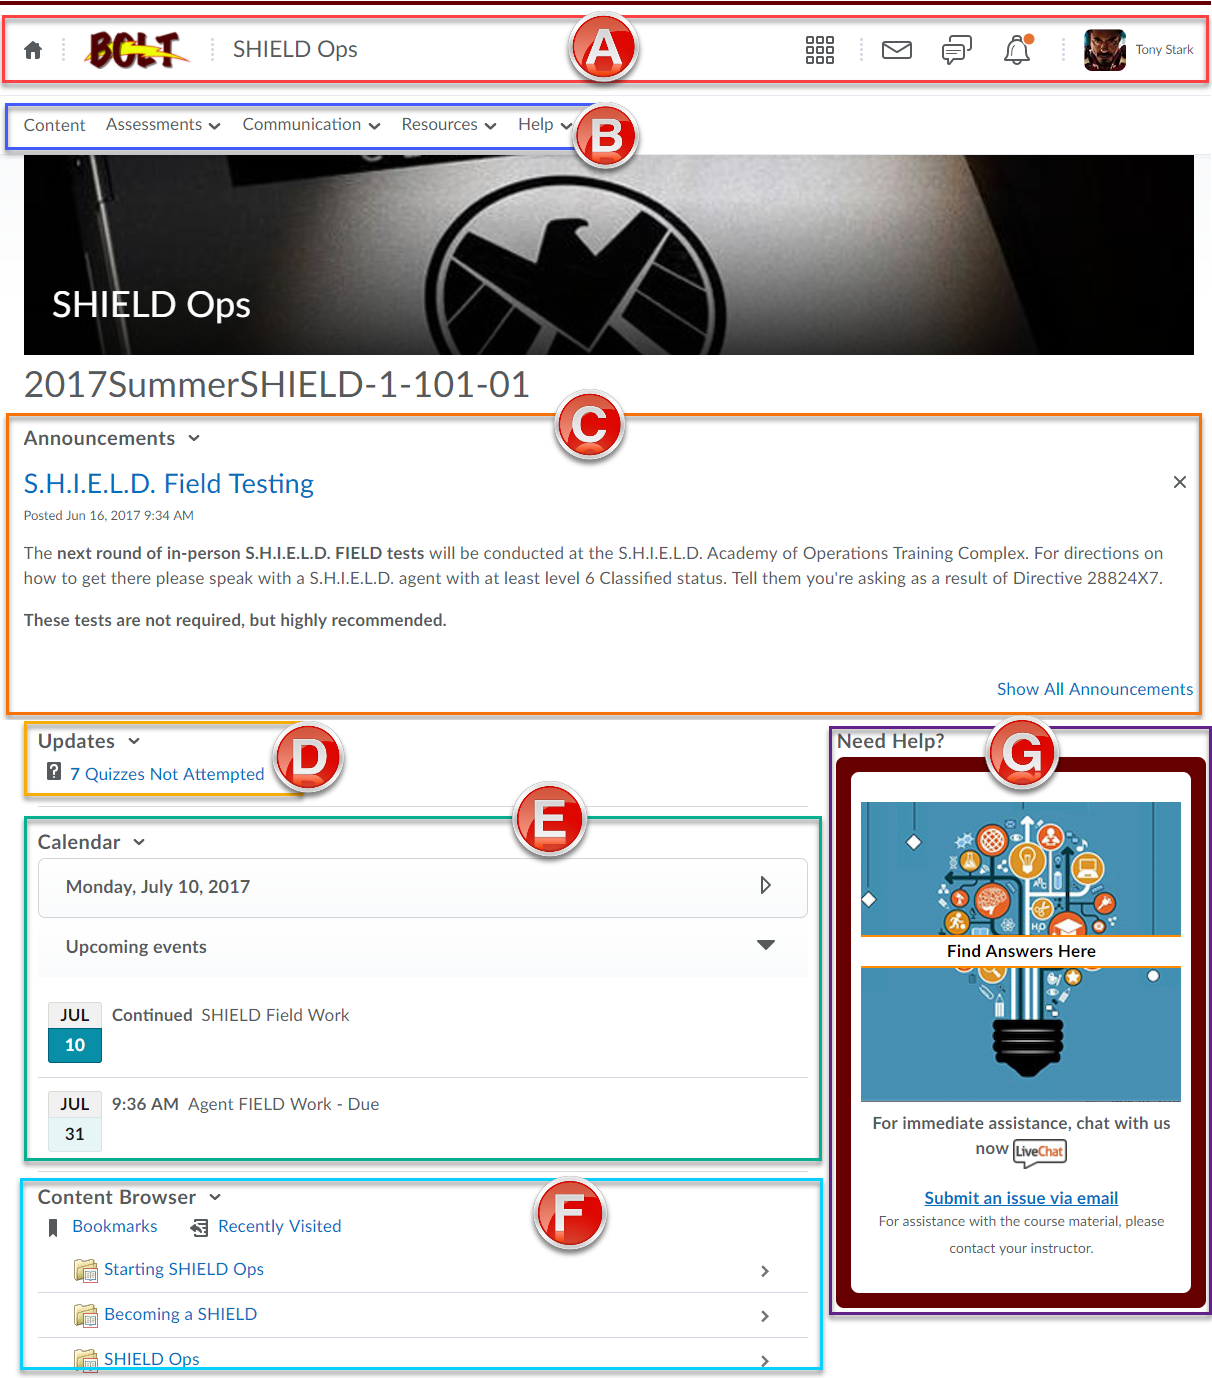 Course home page with 7 key areas defined with labels A through F in the followign order, Mini-bar, Nav bar, Announcments, Updates, Calendar, & Content Browser.